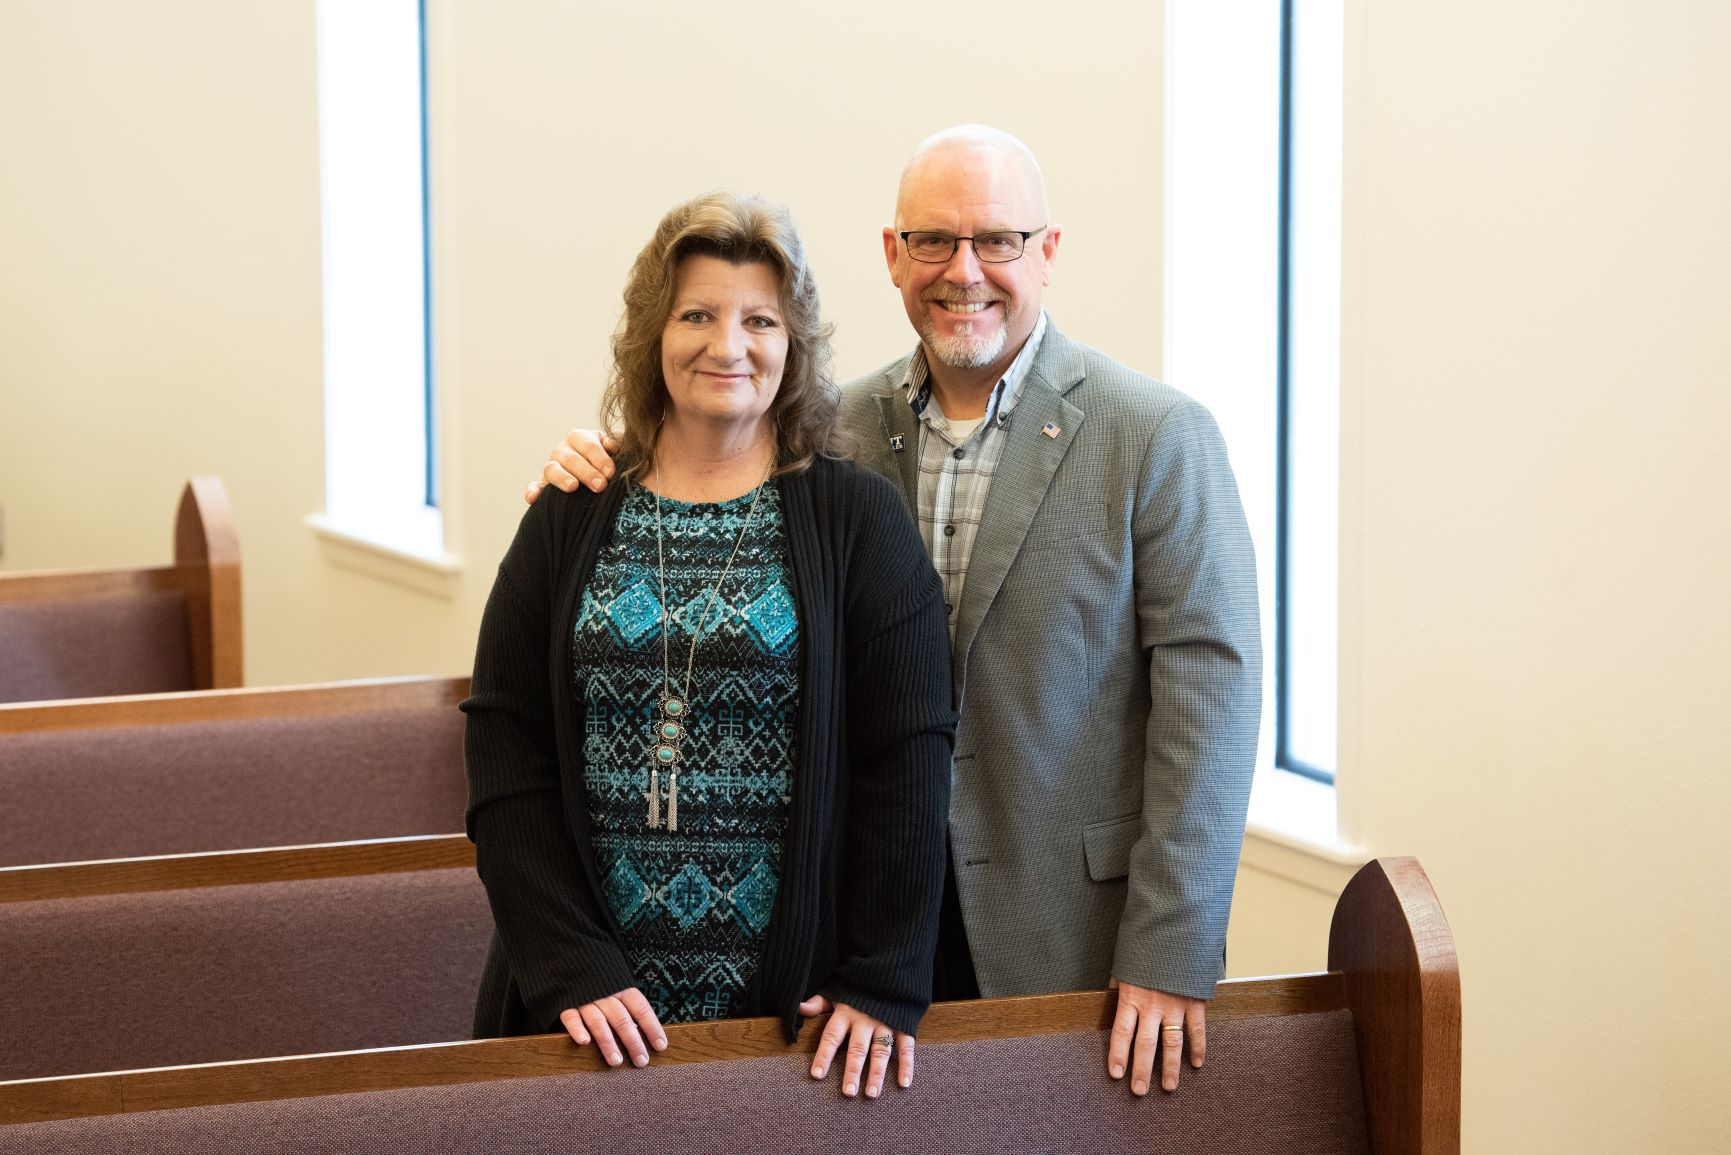 Mark Stark - Mark and his wife Judy began worshiping with the Southside congregation in 2016. He was appointed to Deacon in 2018.